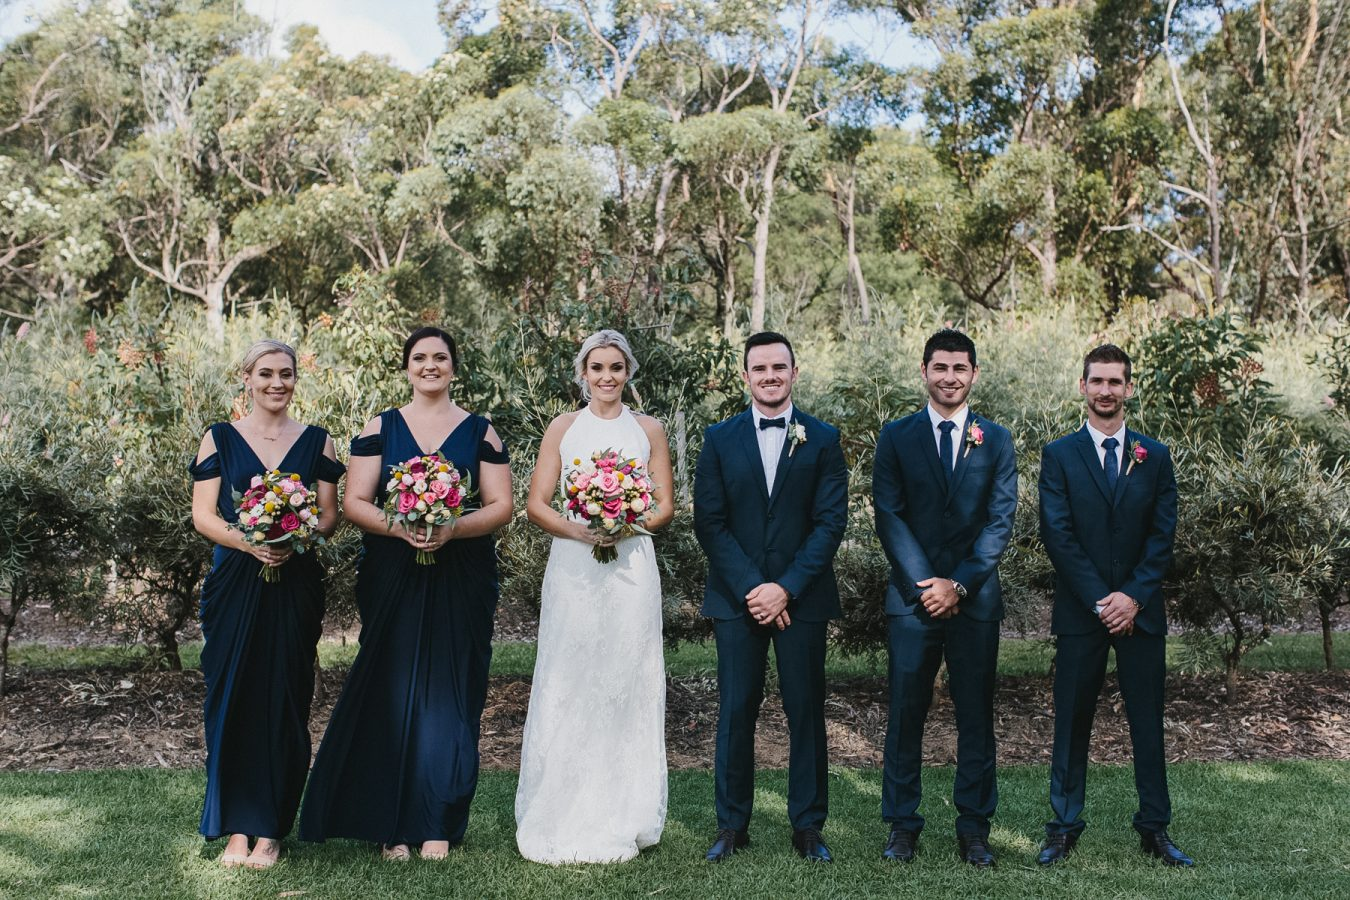 Courtney-Josh-Growwild-Bowral-southernhighlans-Wedding-56